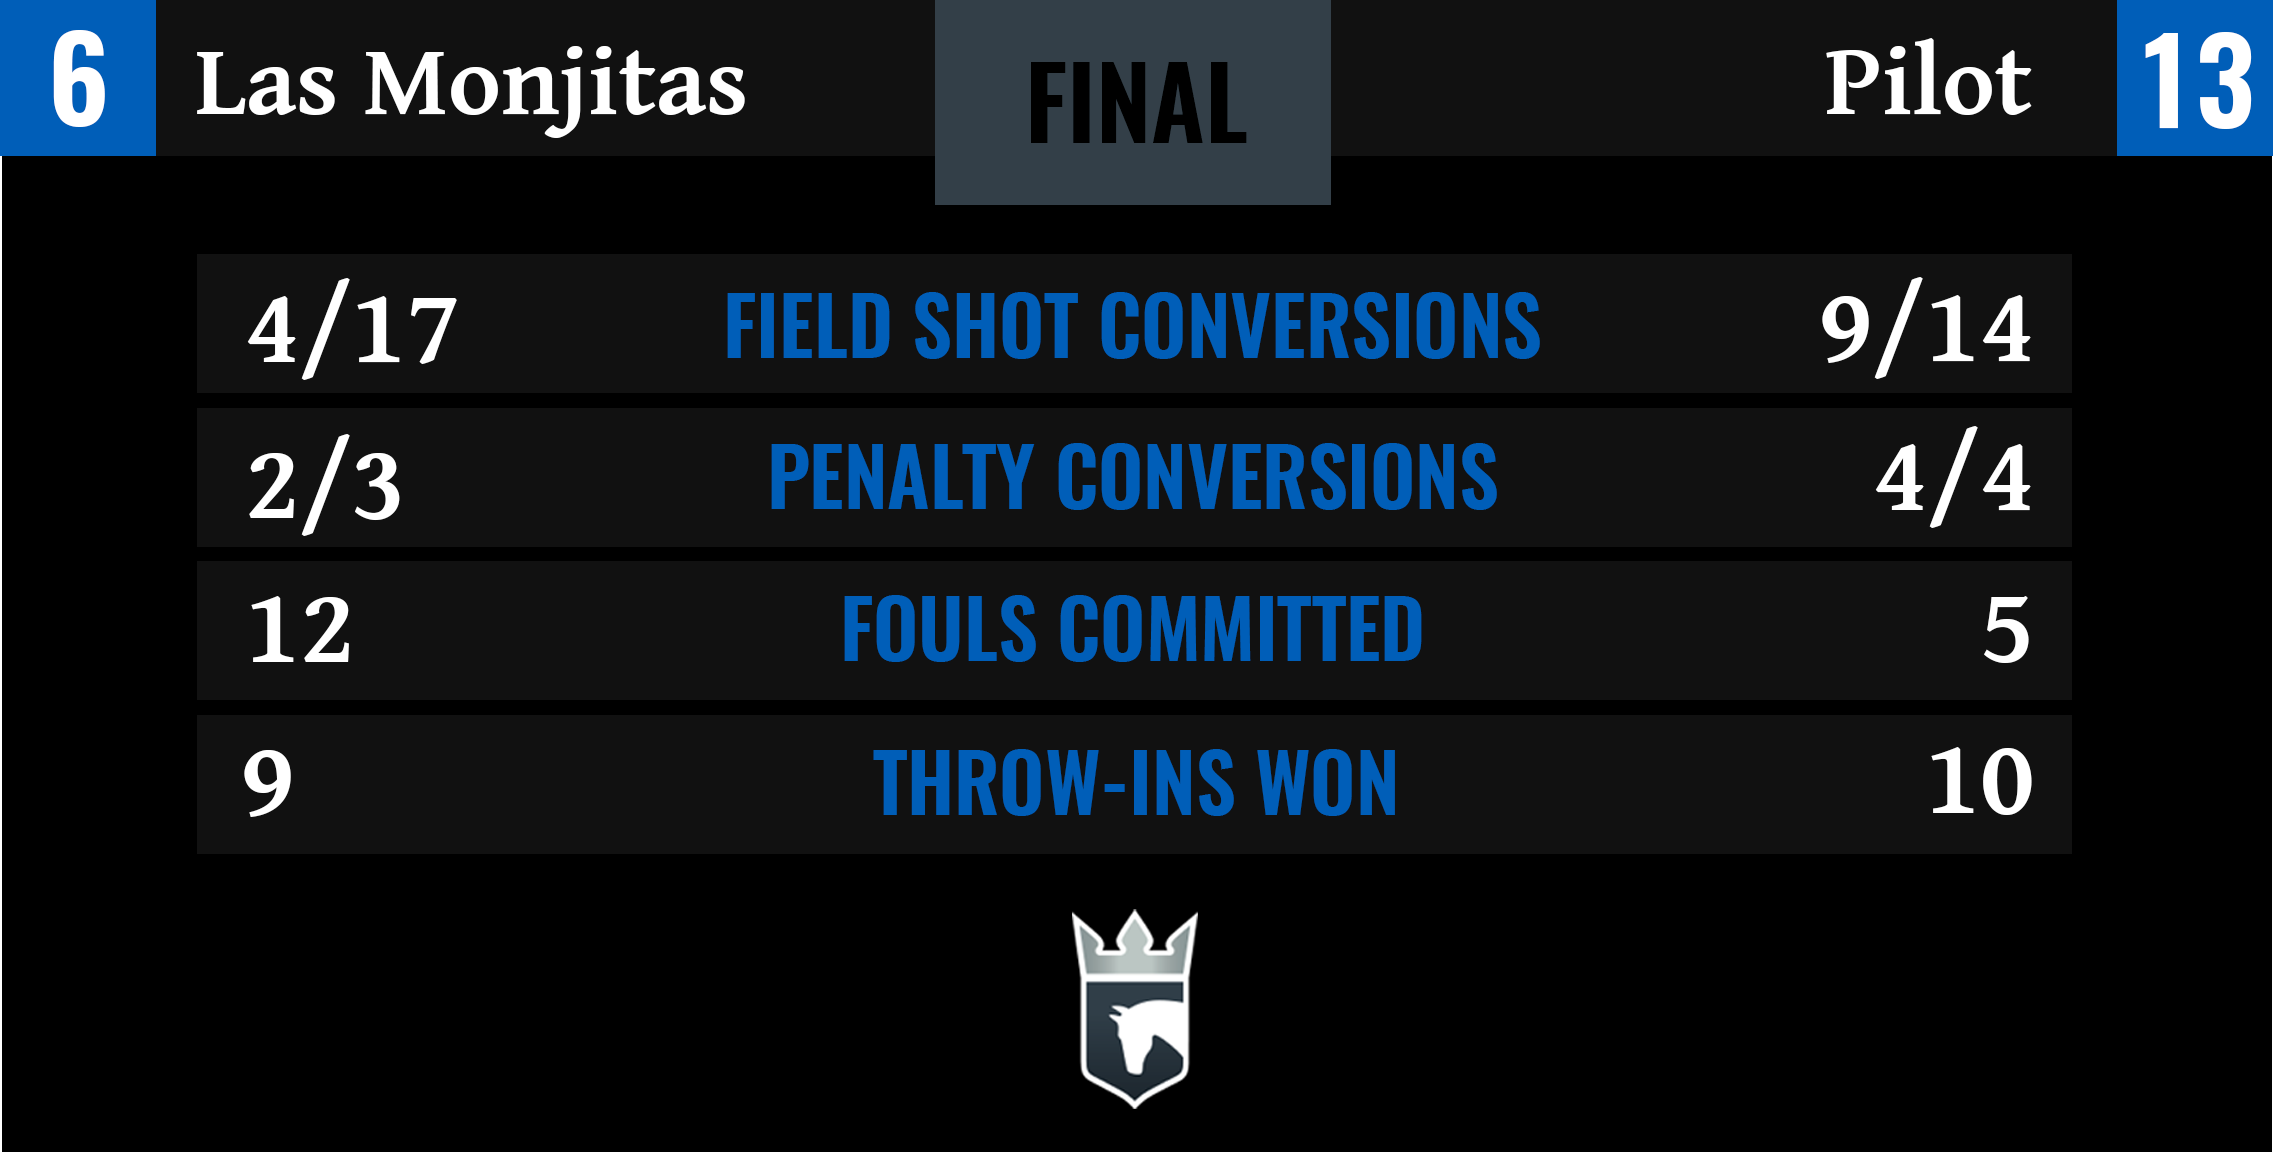 Las Monjitas vs Pilot Final Stats